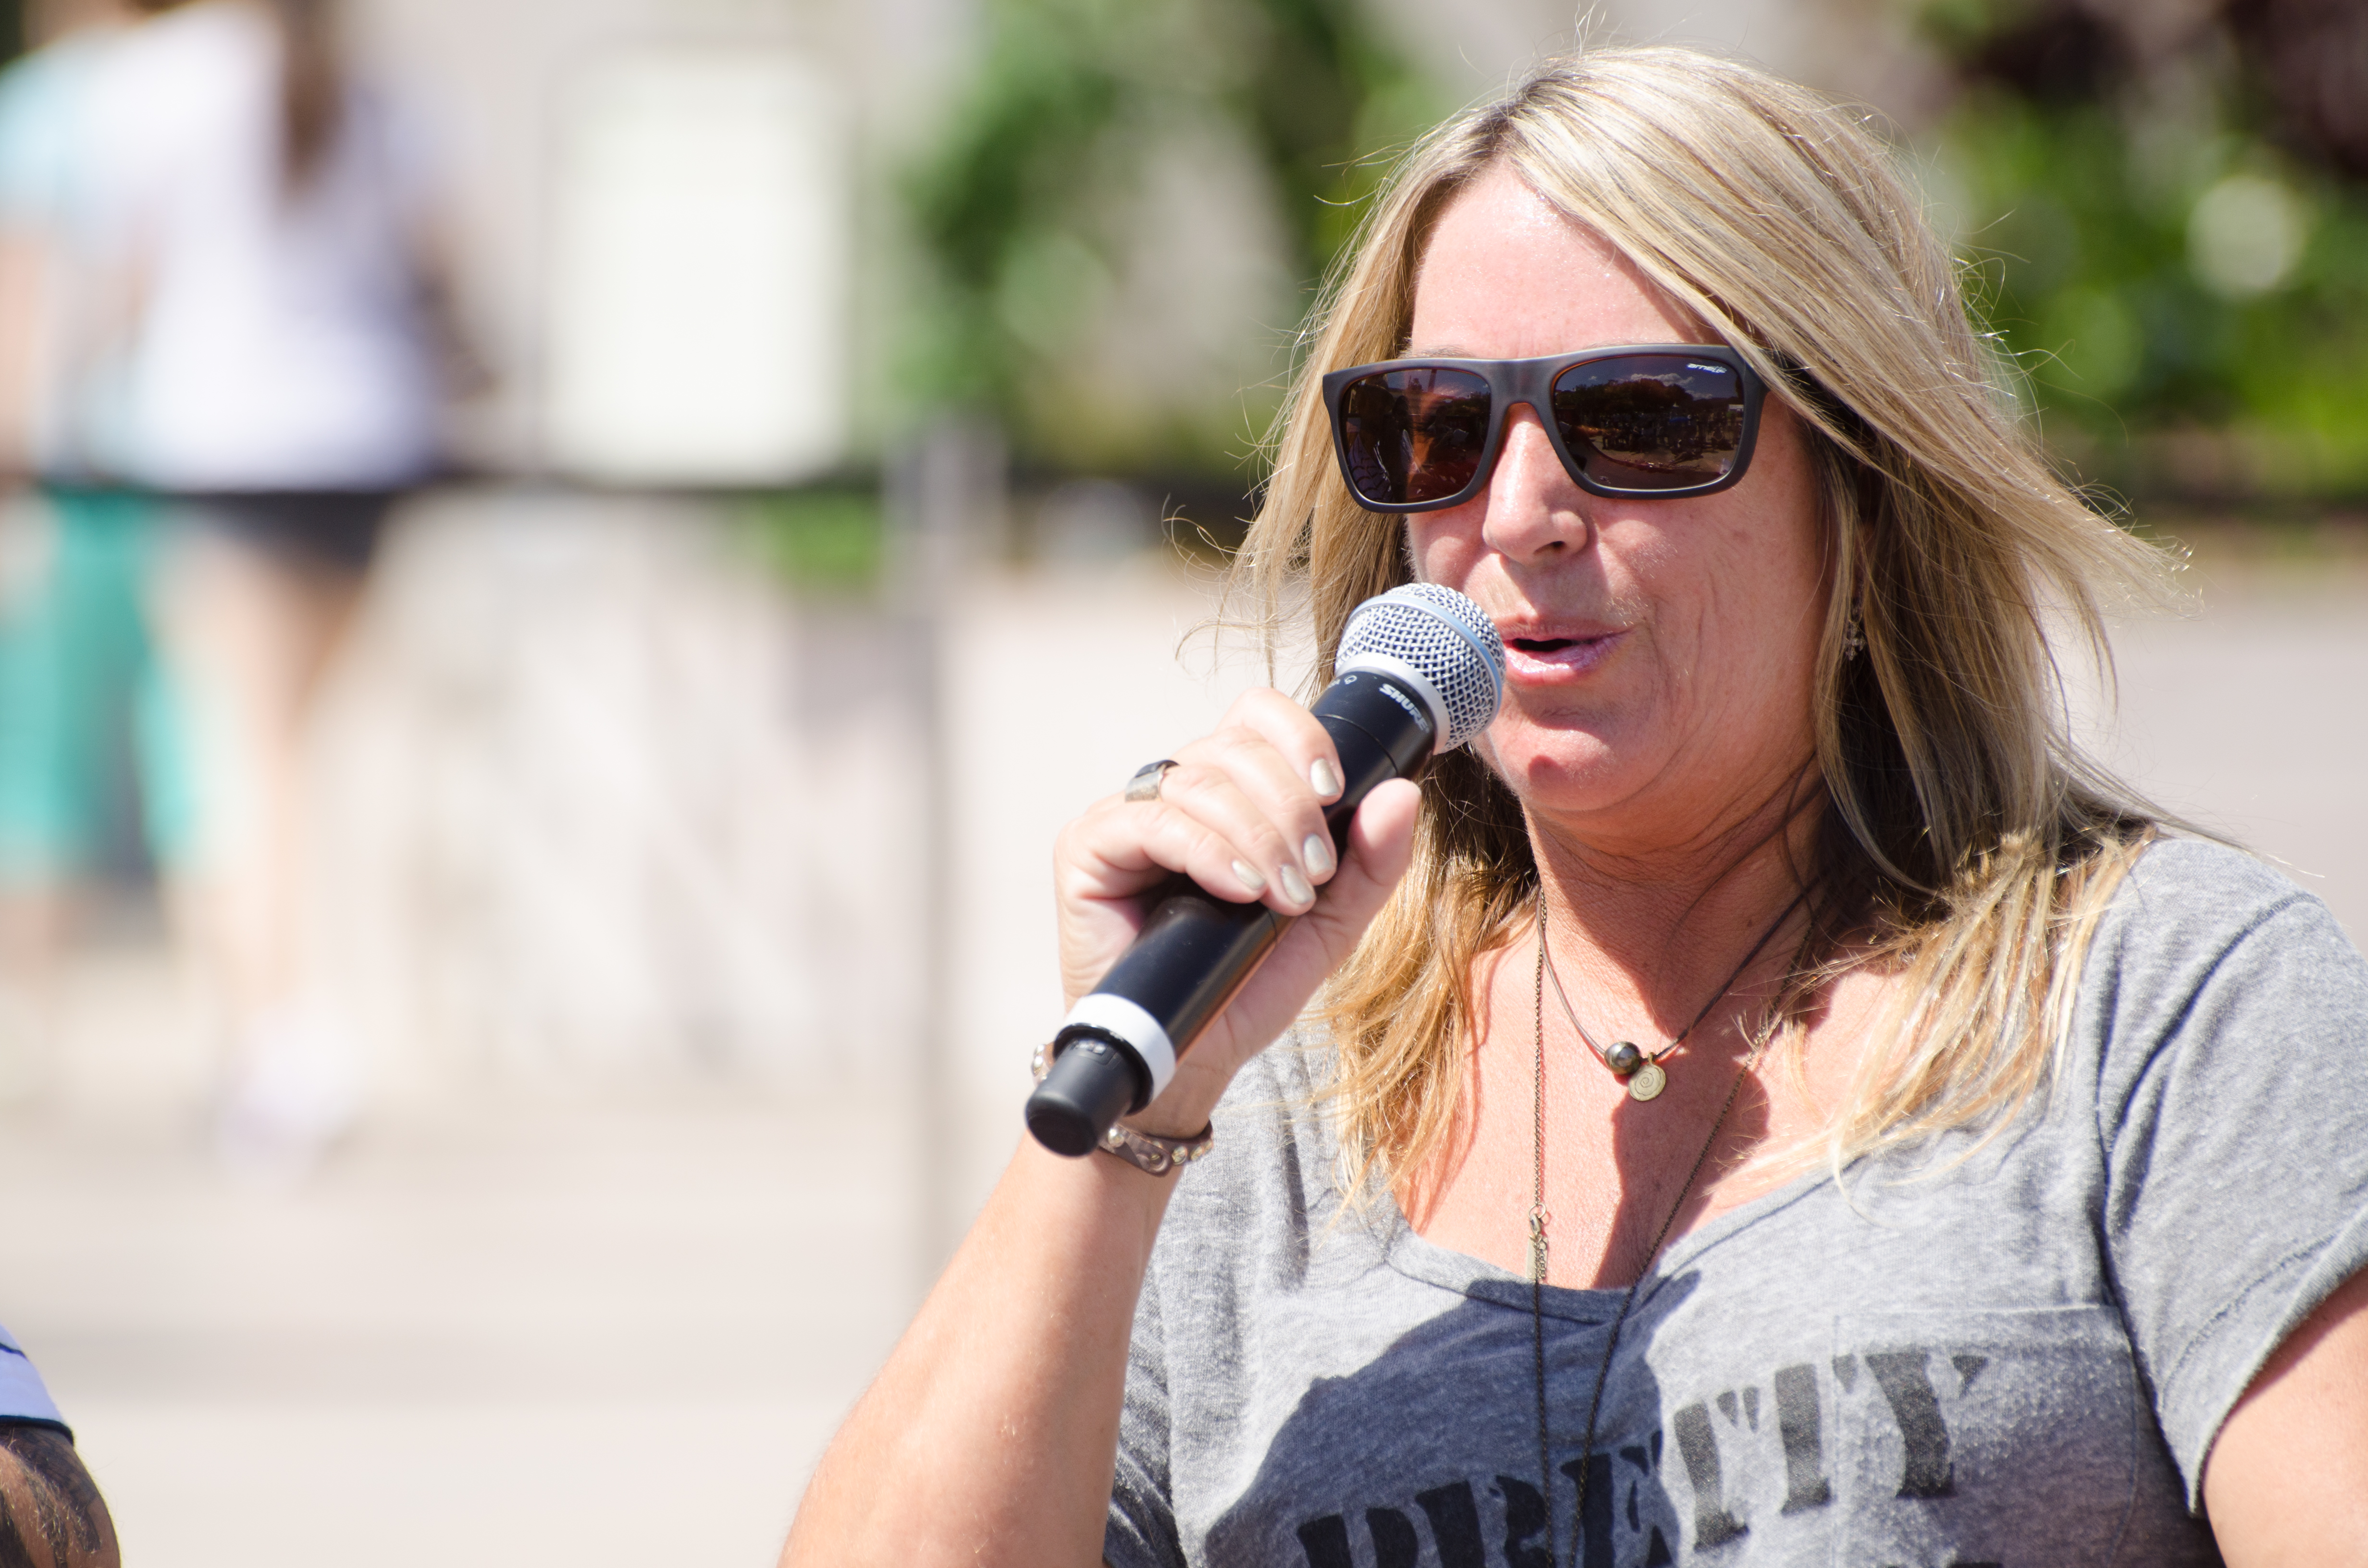 Cindy speaks at Innoskate about skate fashion.